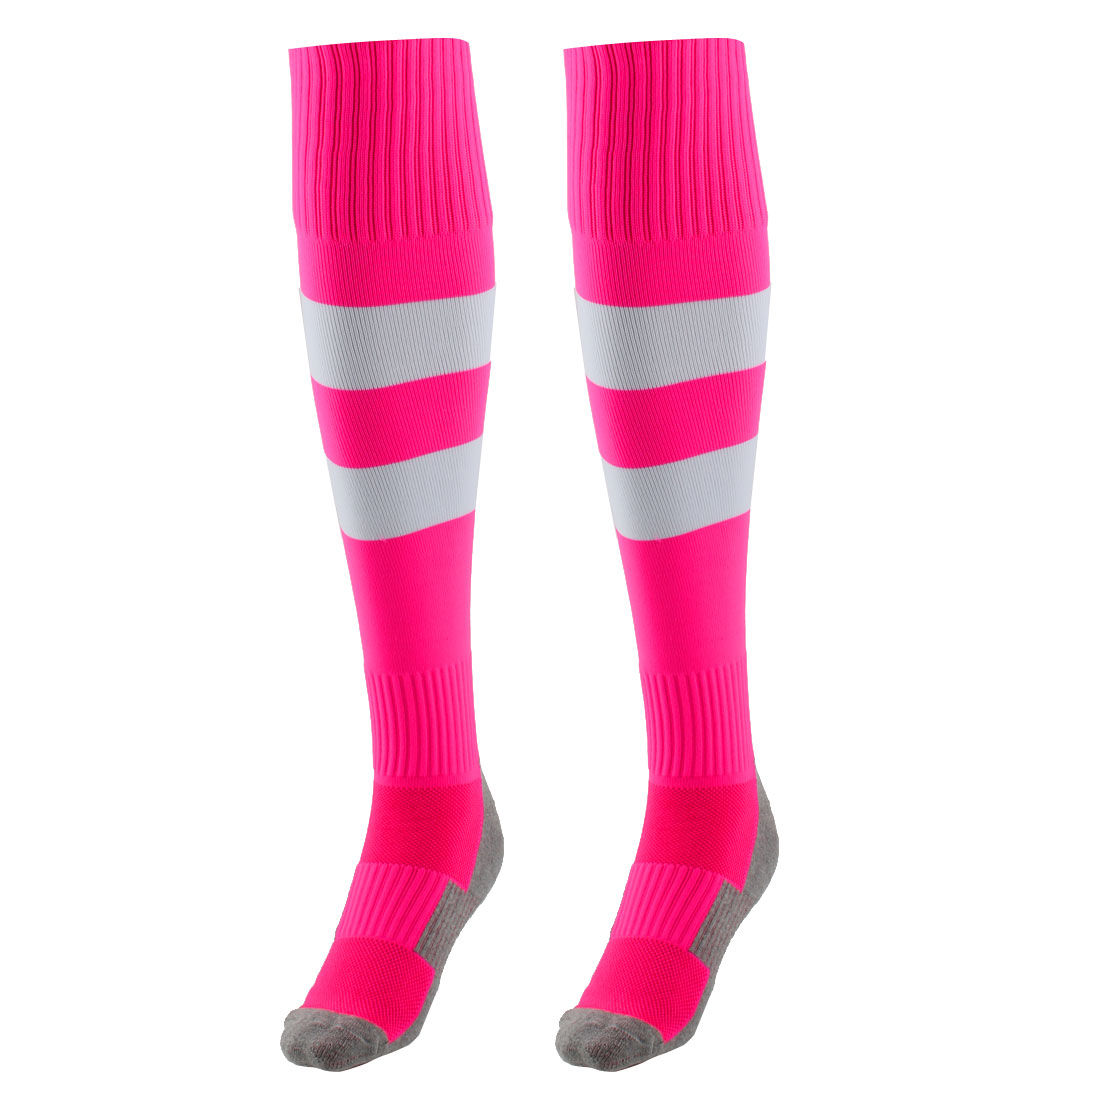 Outdoor Sports Nylon Knee High Style Stretch Baseball Soccer Football Long Socks Stockings Rose Red Pair